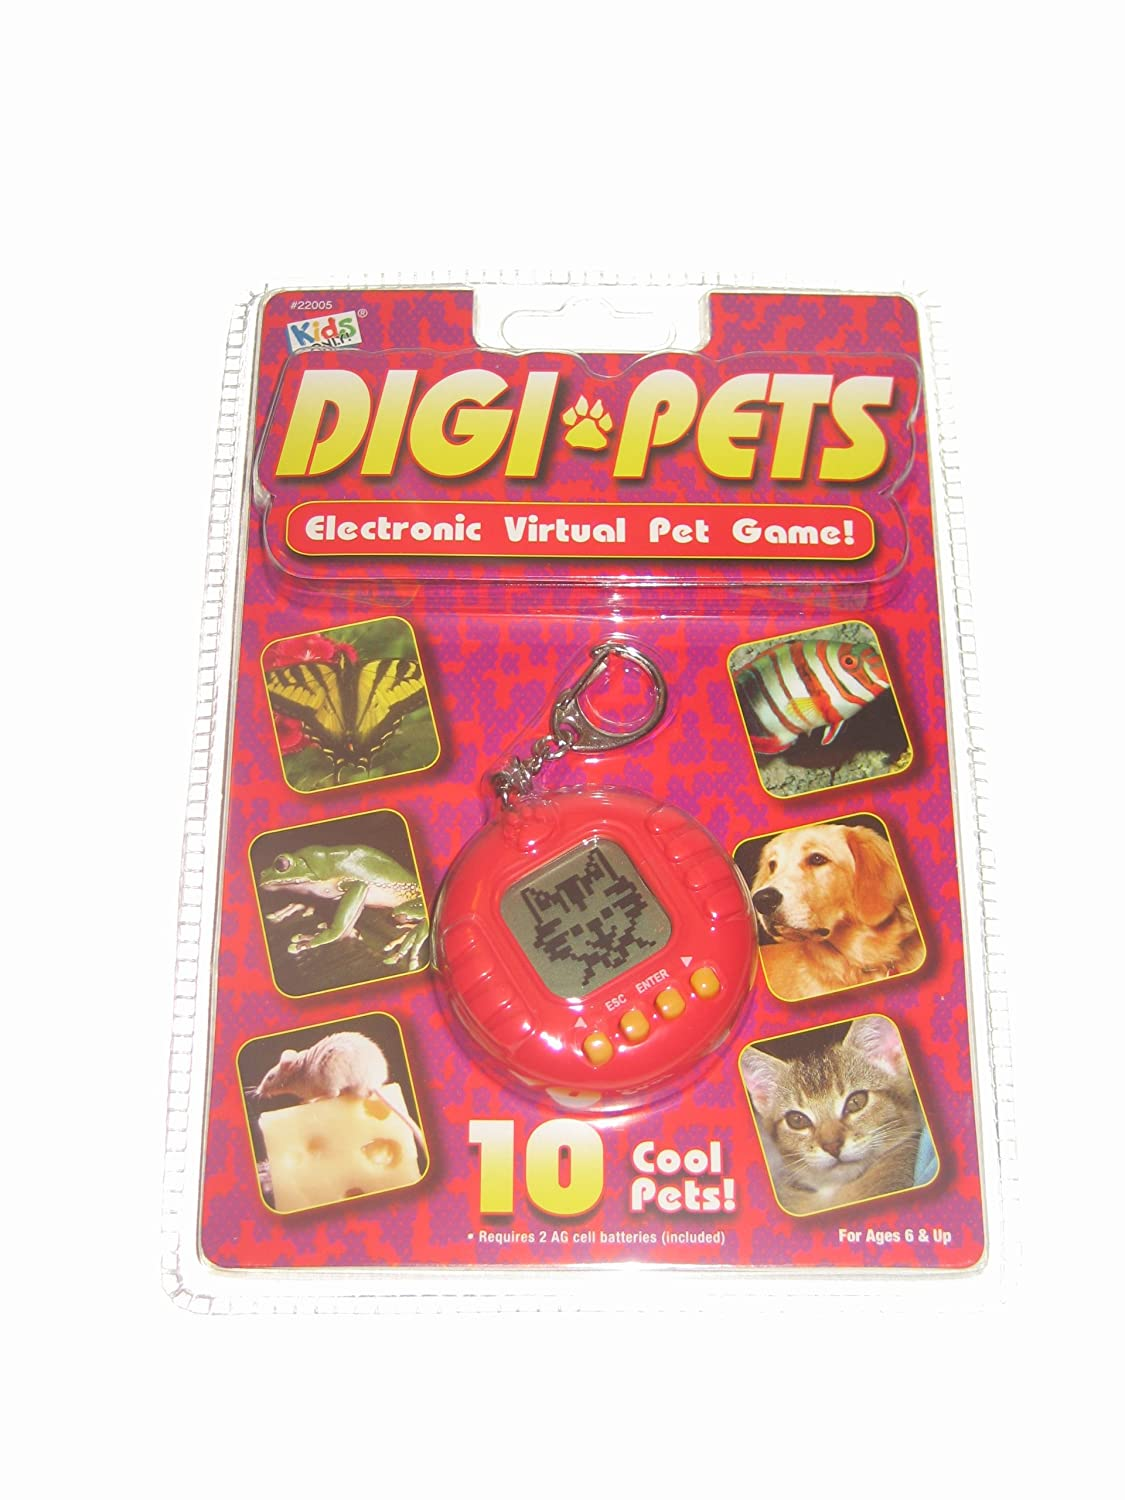 Digi Pets Electronic Virtual Pet Game Assorted Colors by Kids Only